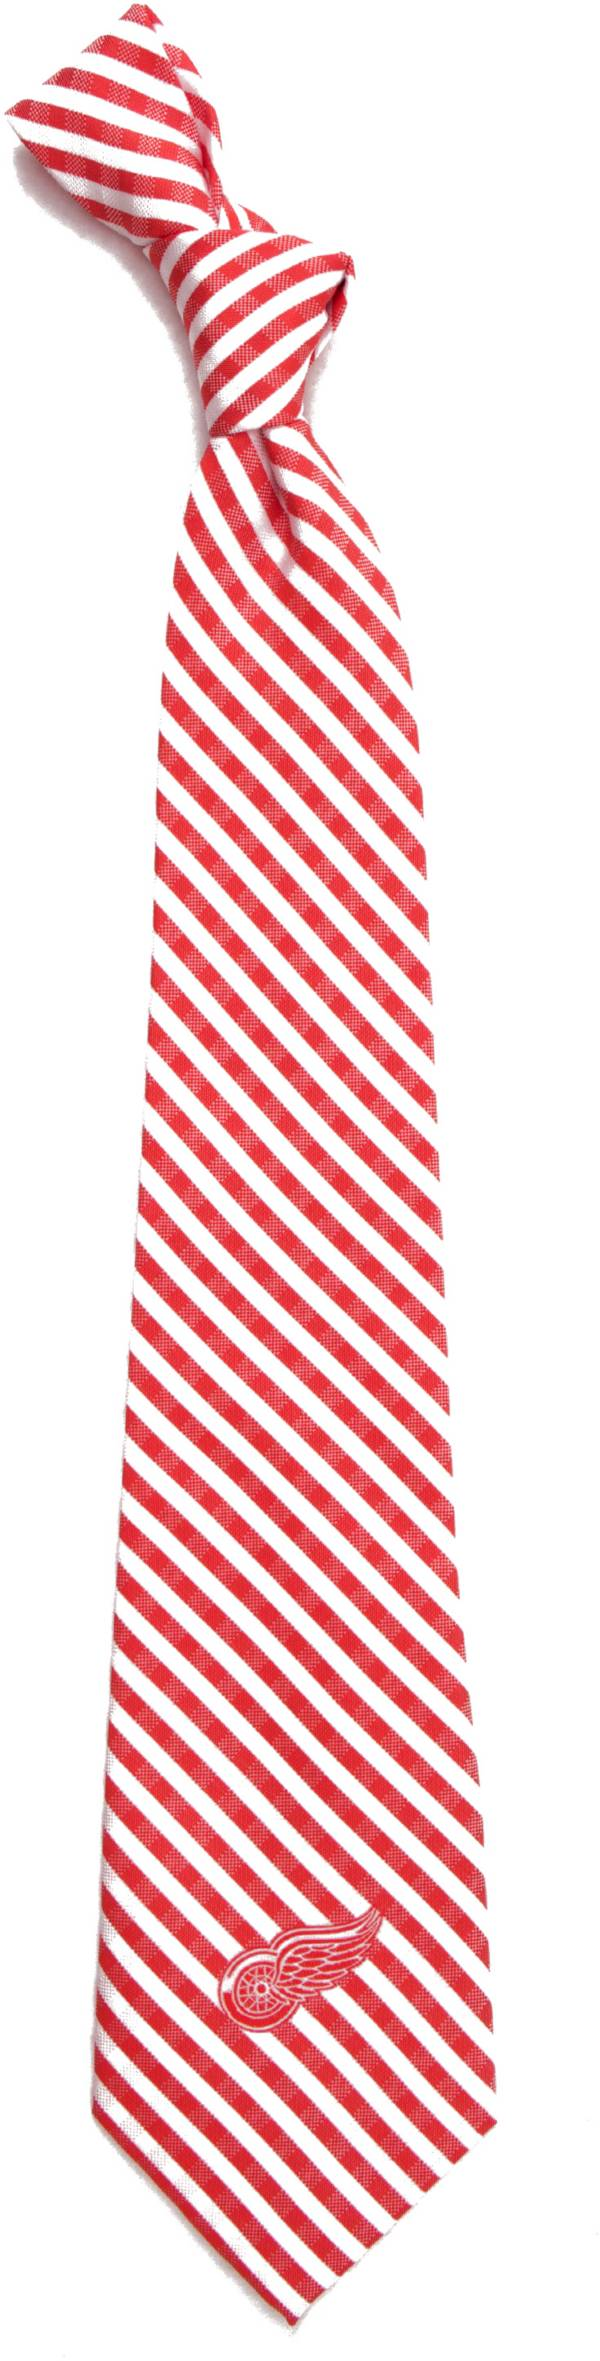 Eagles Wings Detroit Redwings Gingham Necktie product image